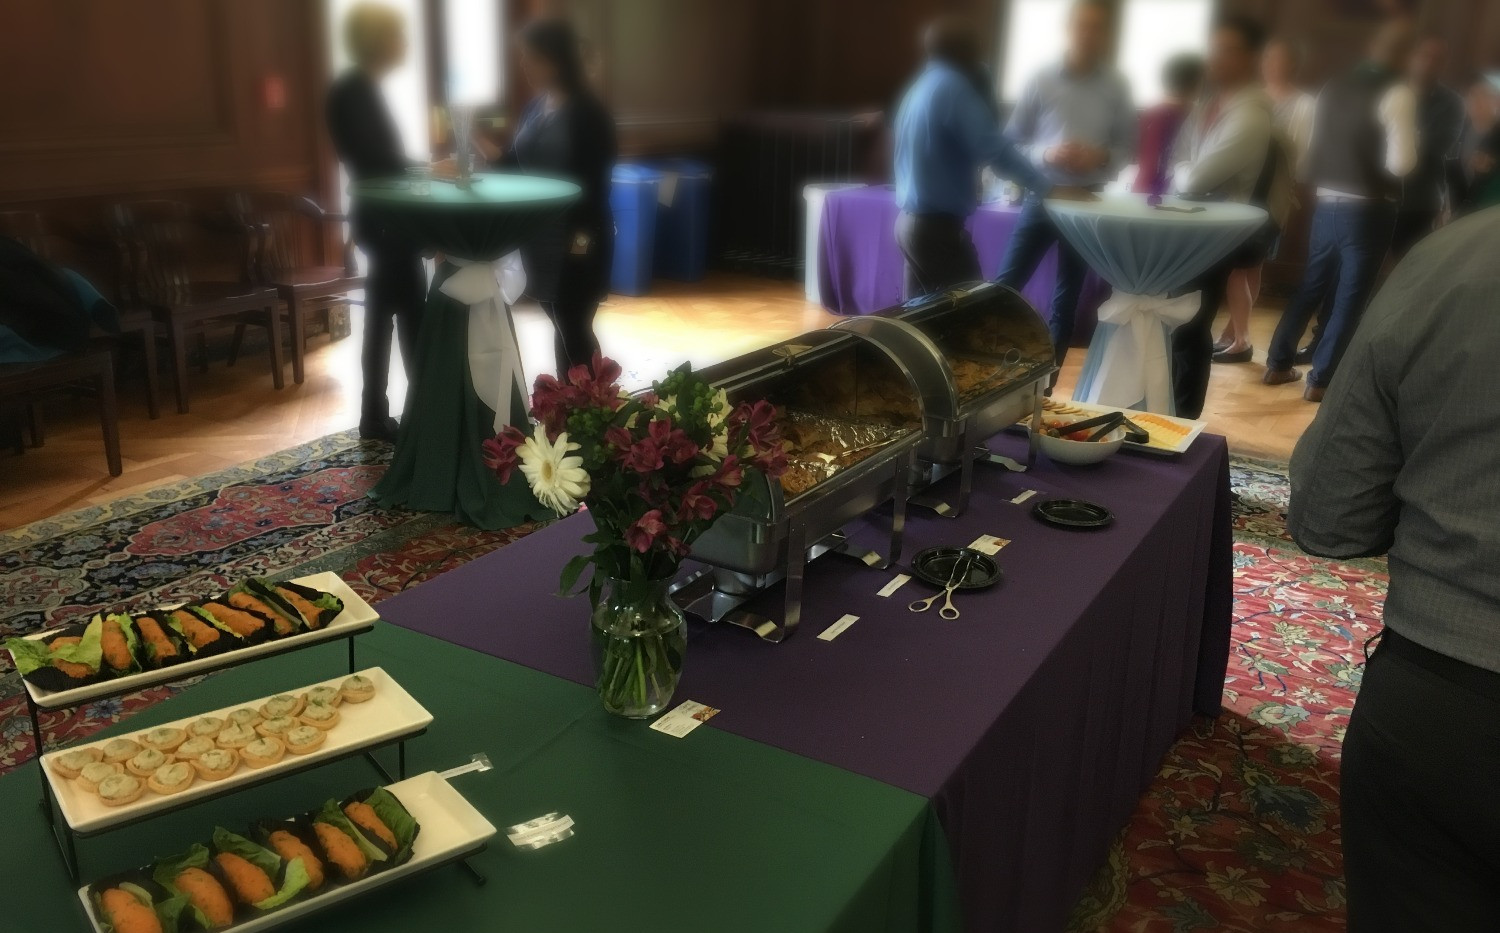 Buffet style catering at Northwestern University